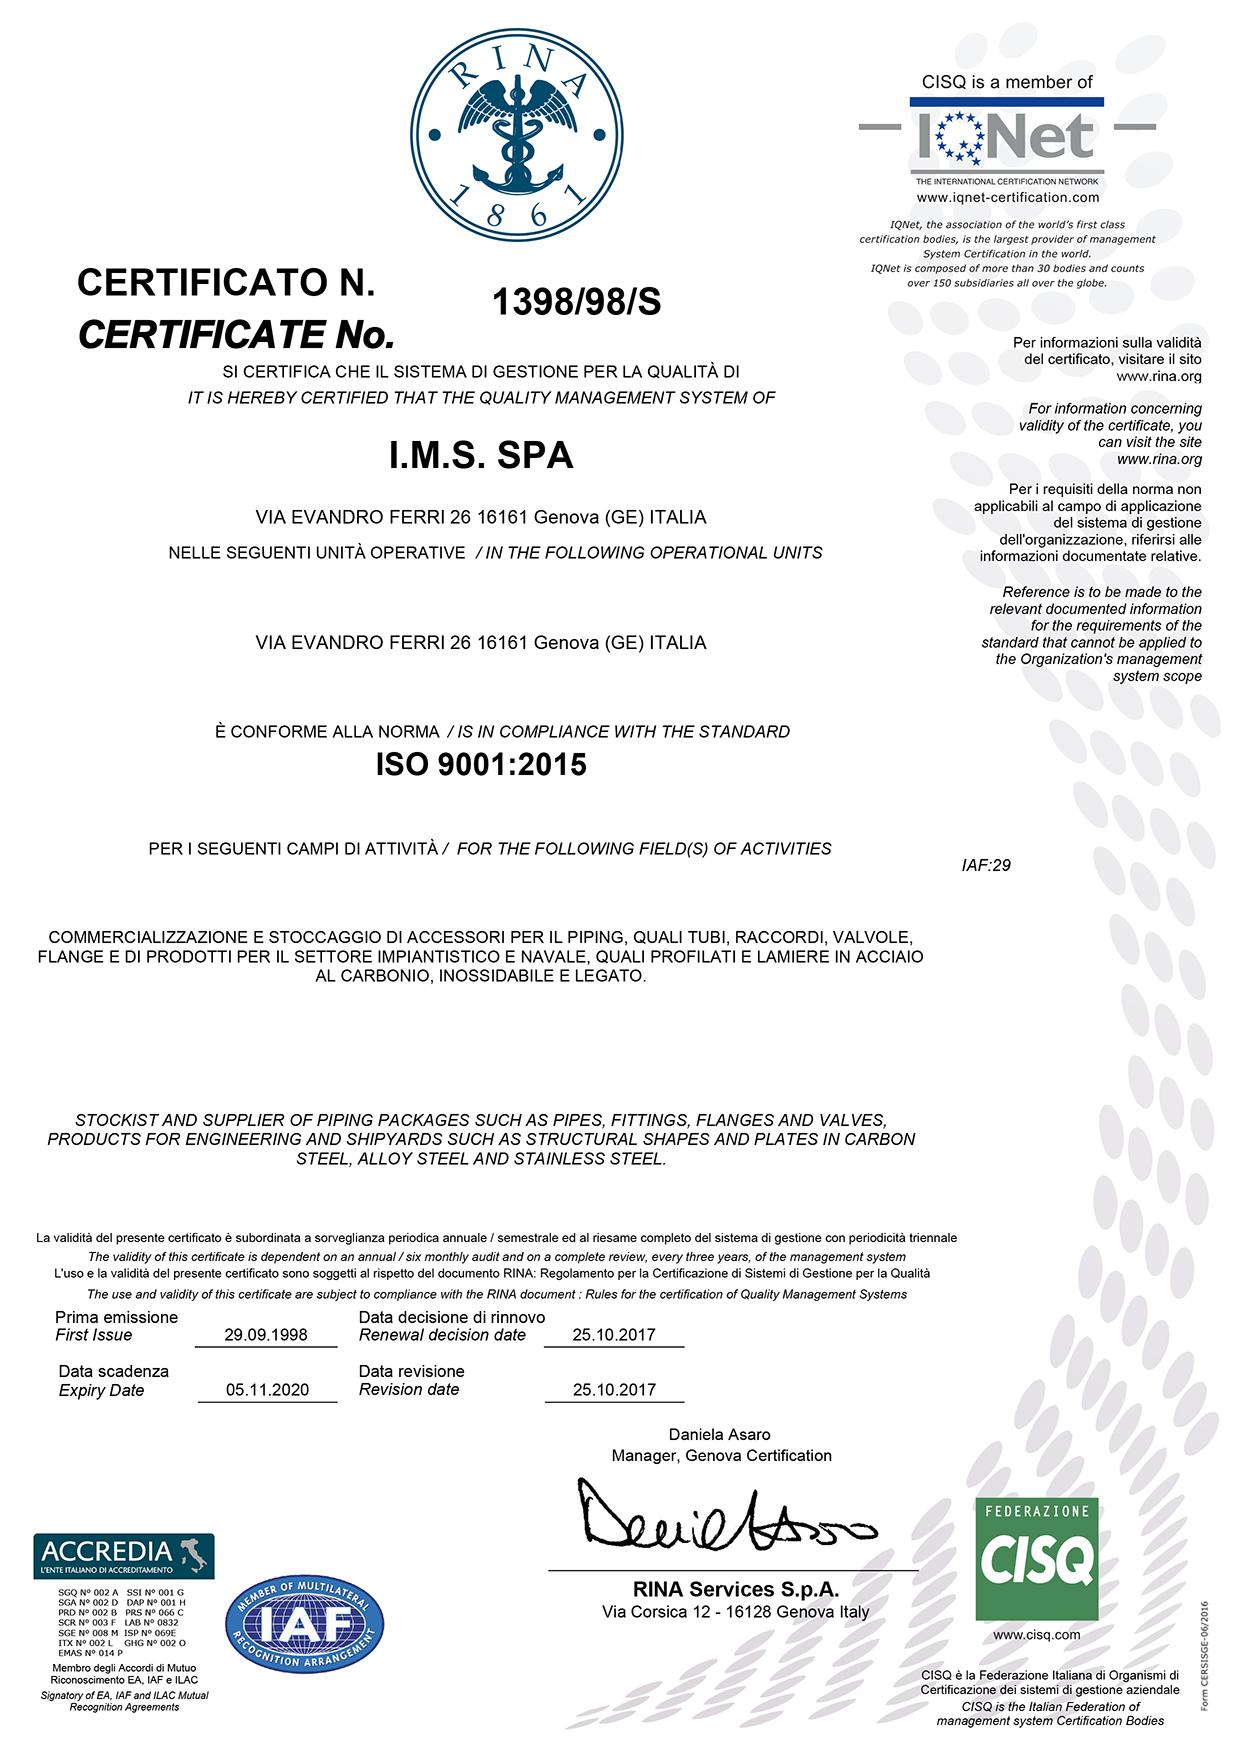 Ims spa specialized supplier of piping packages for oil to request our iso certificate please contact us xflitez Images